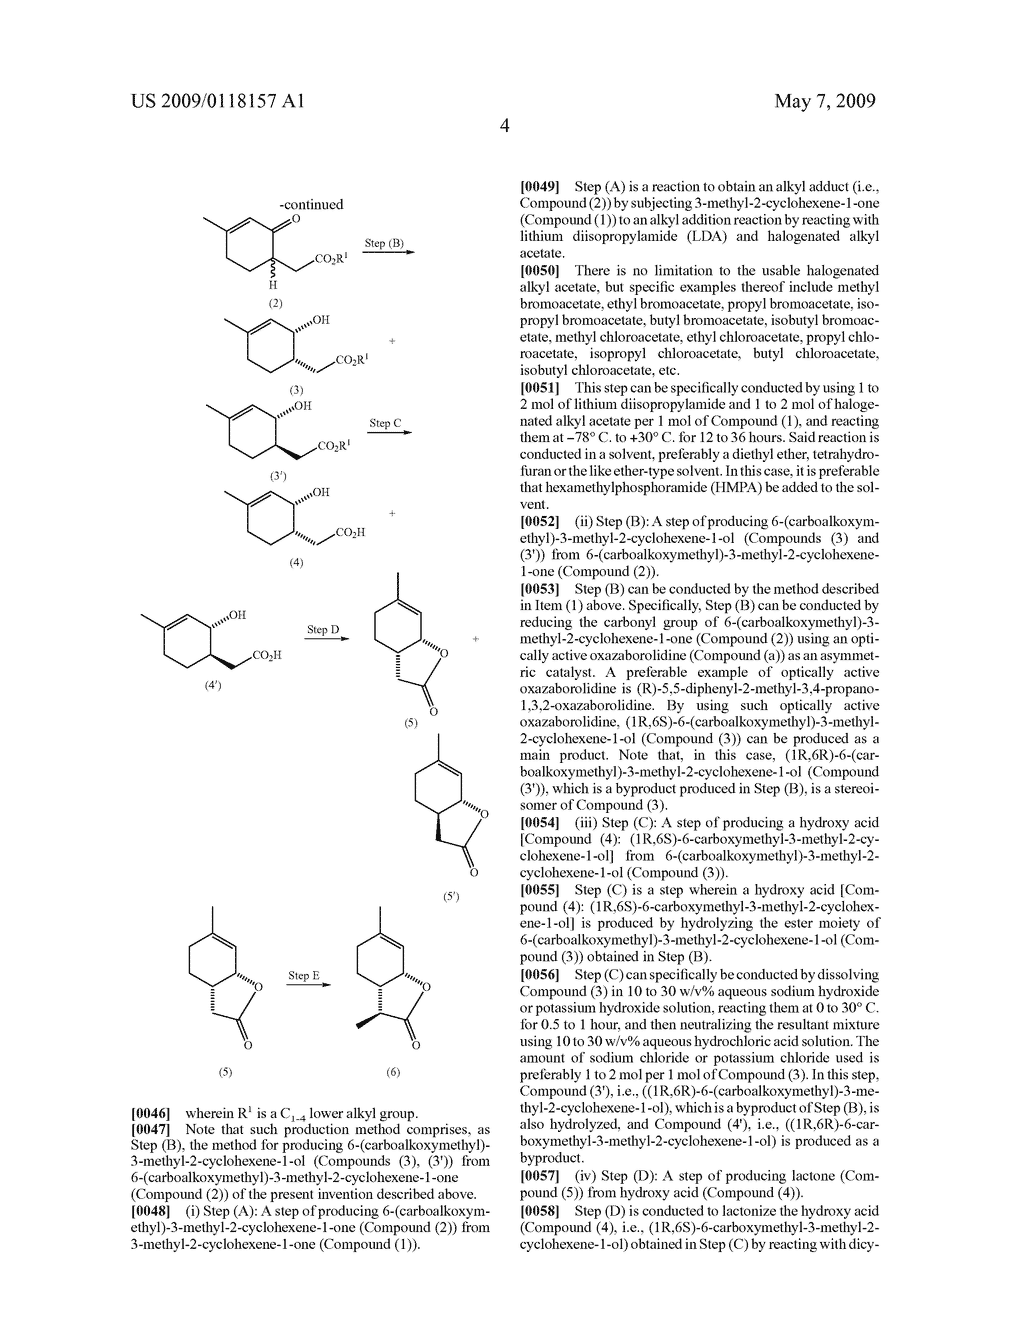 Processes For Production Of Wine Lactone And Its Intermediates And Application Of The Lactone - diagram, schematic, and image 05